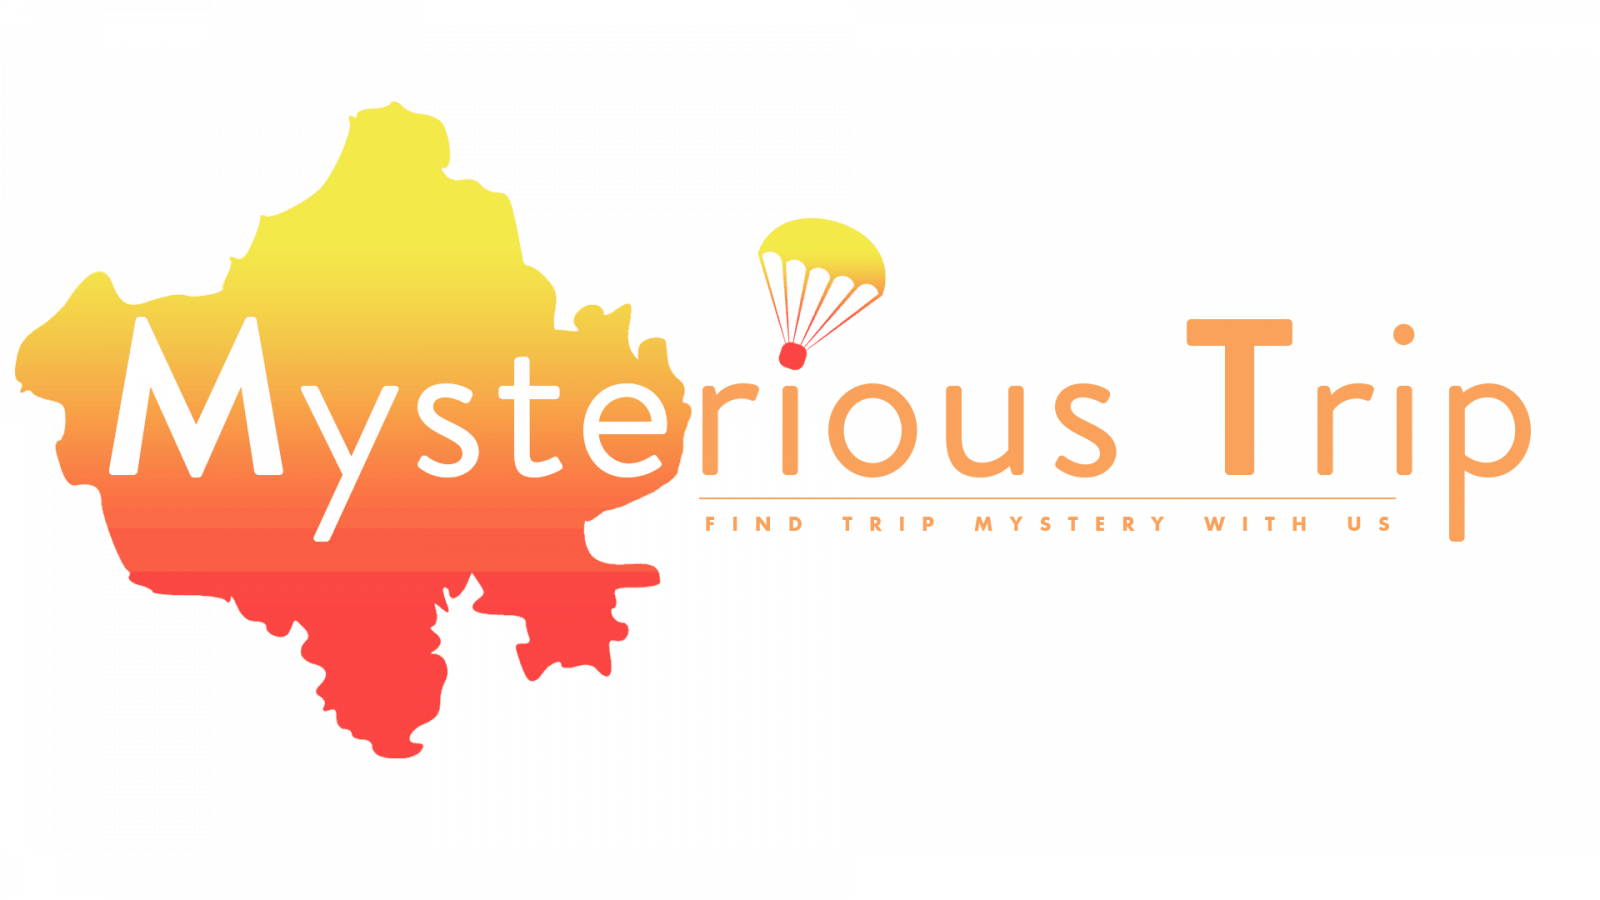 Mysterioustrip